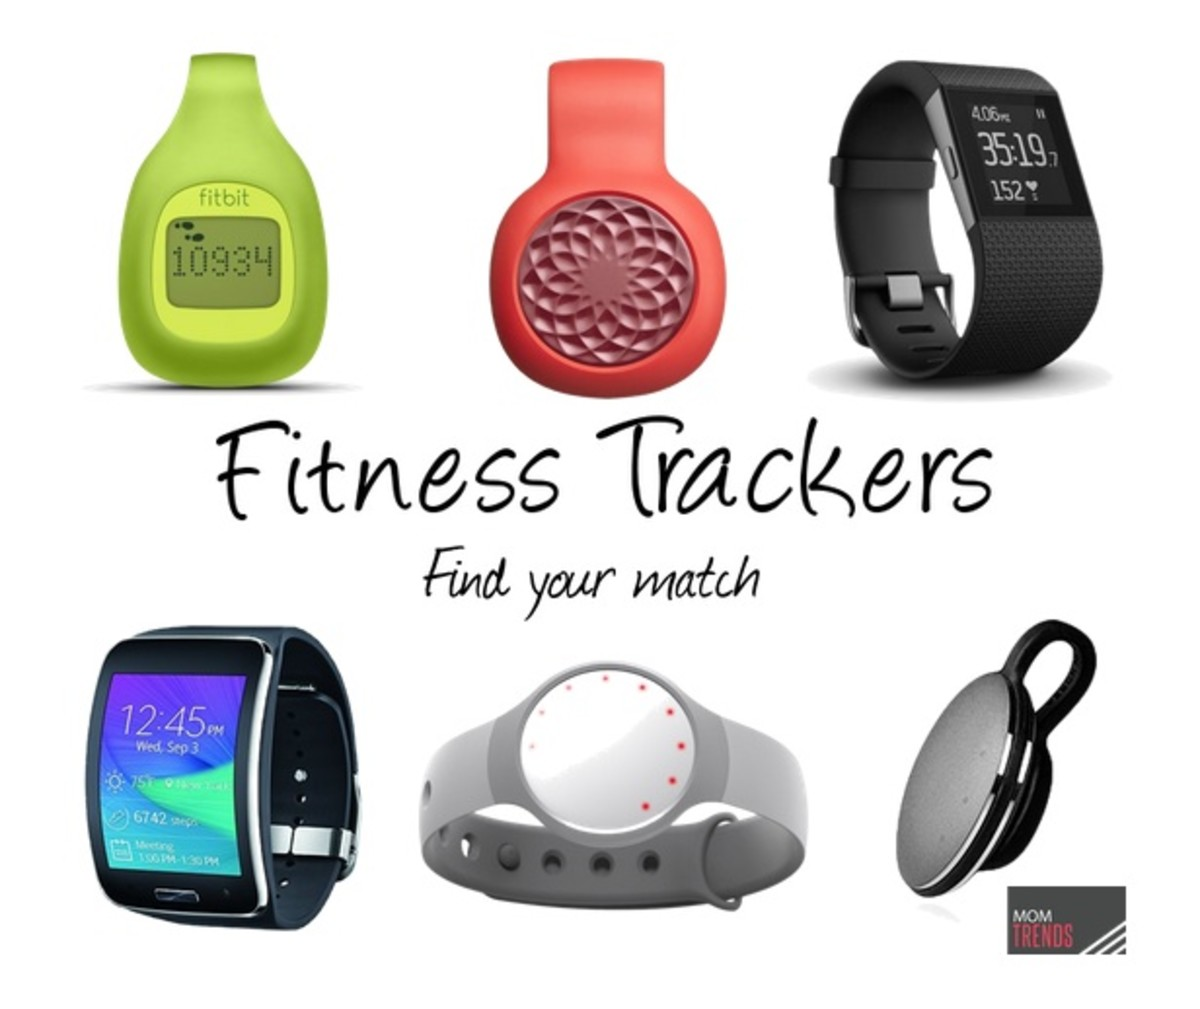 Fitness Trackers lead